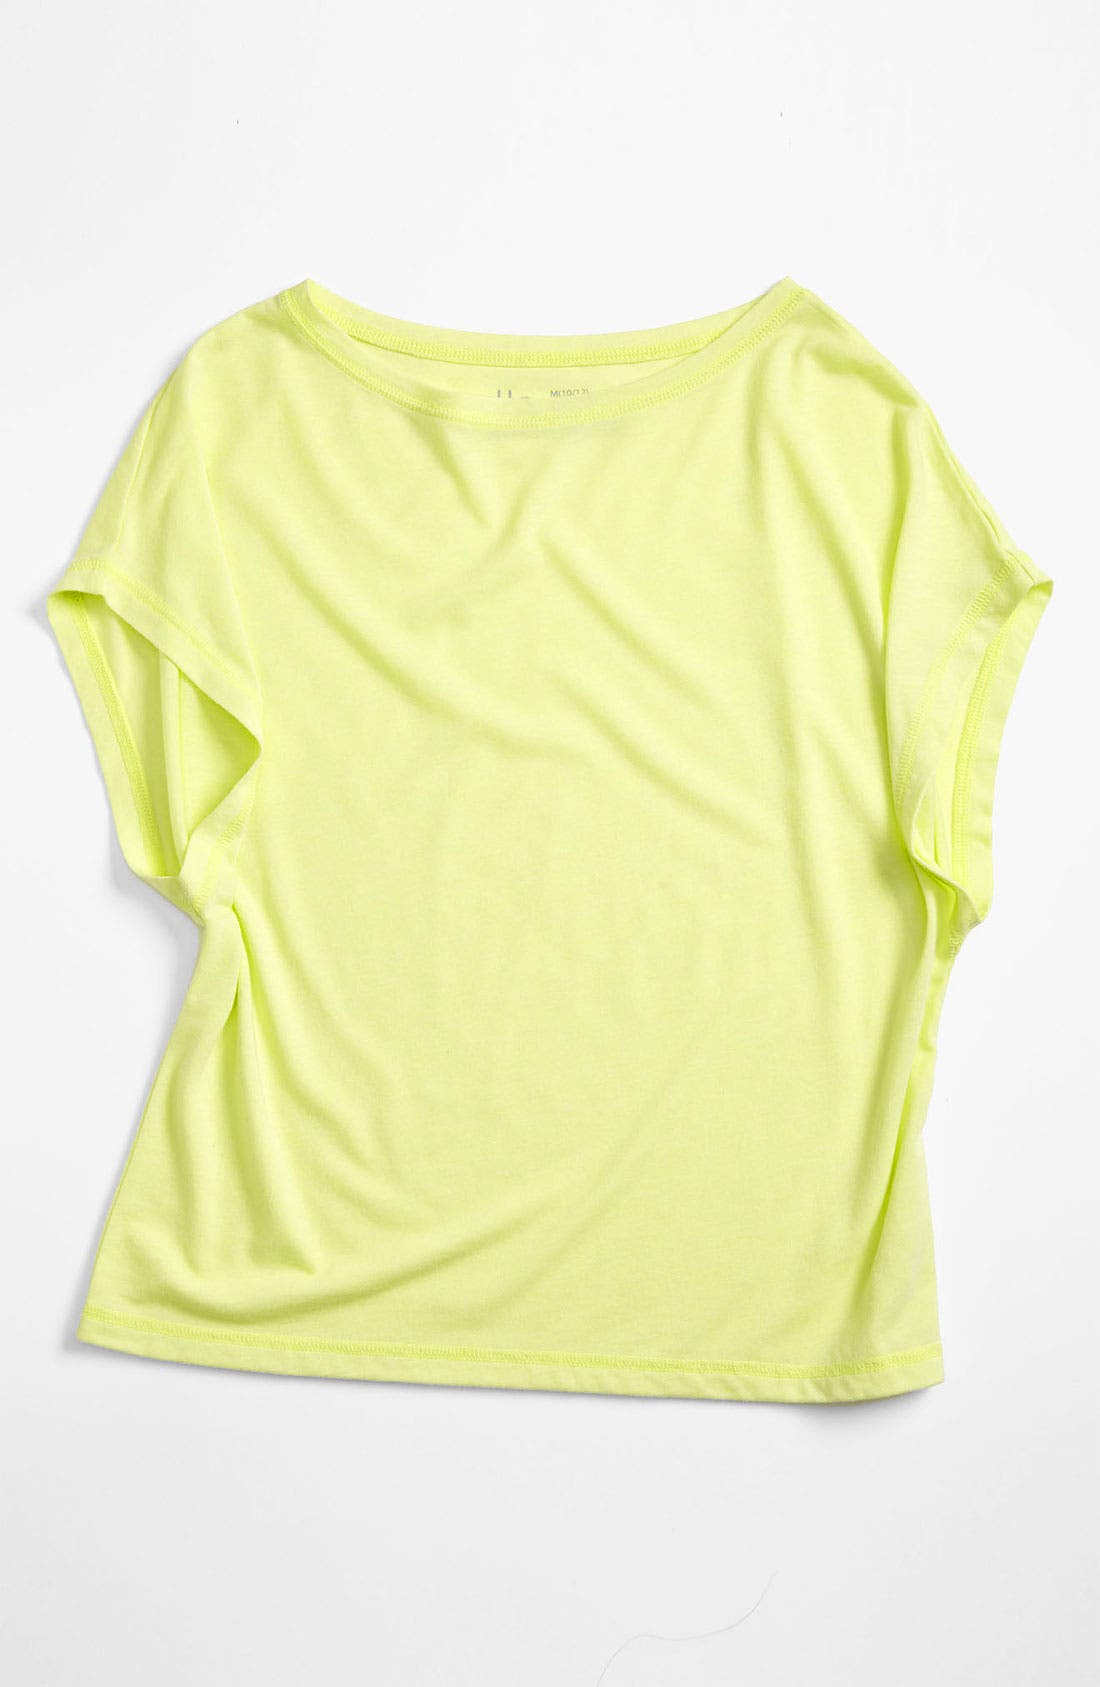 Alternate Image 1 Selected - Zella Girl 'Breezy' Knit Tee (Little Girls & Big Girls)